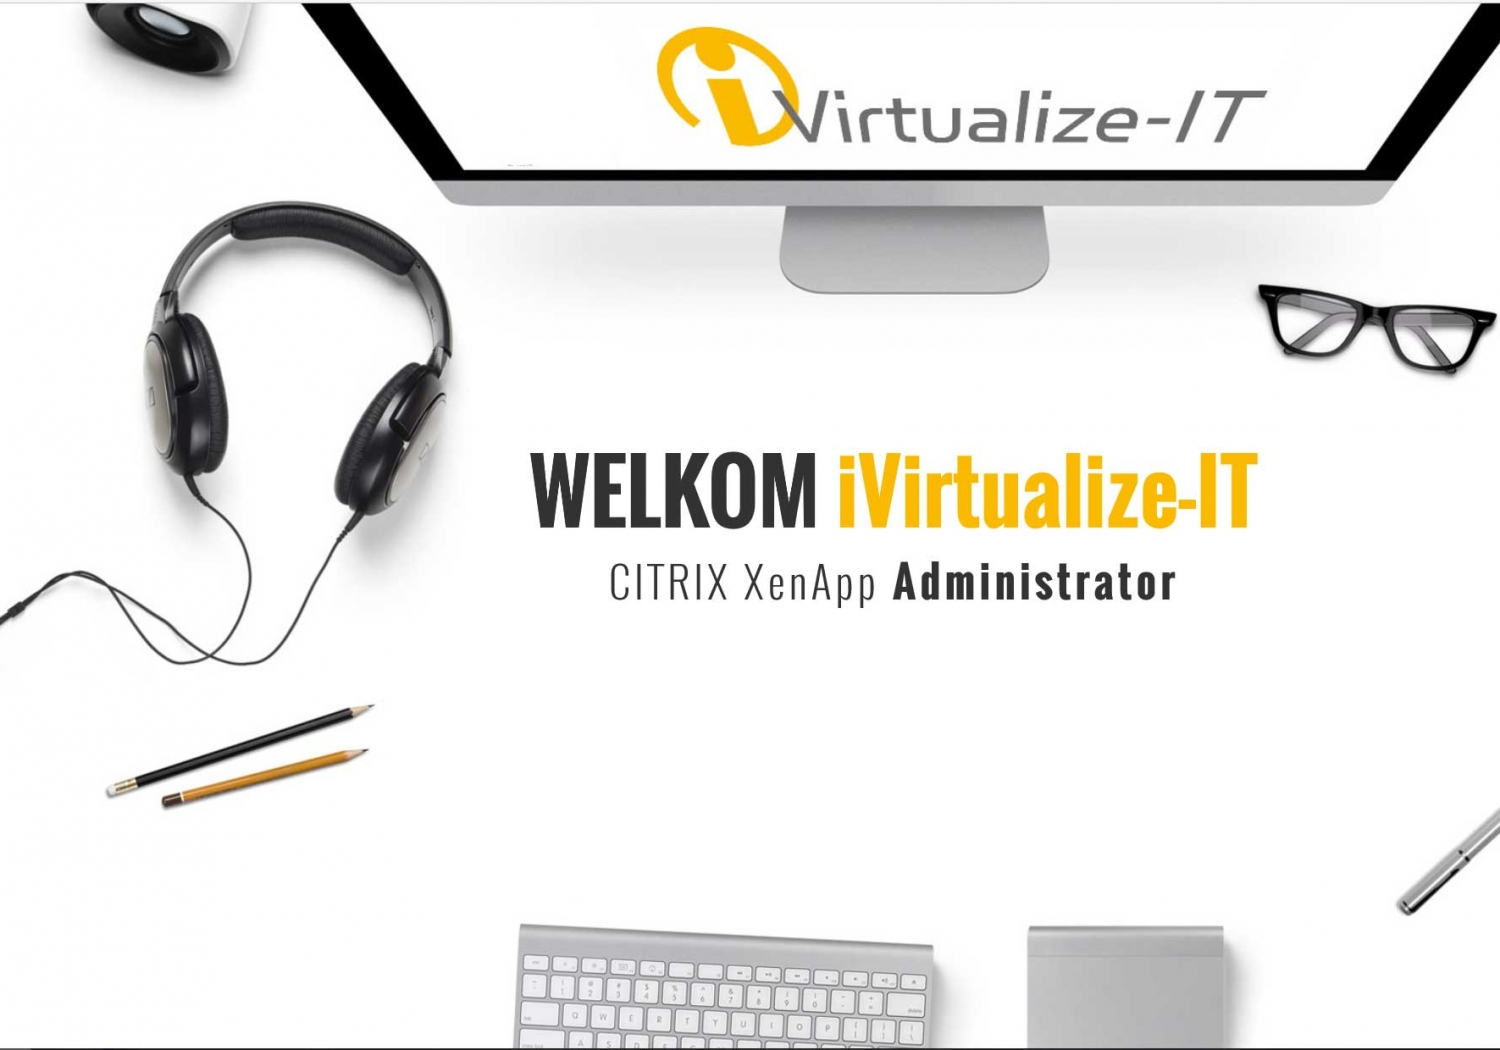 IVirtualize-IT